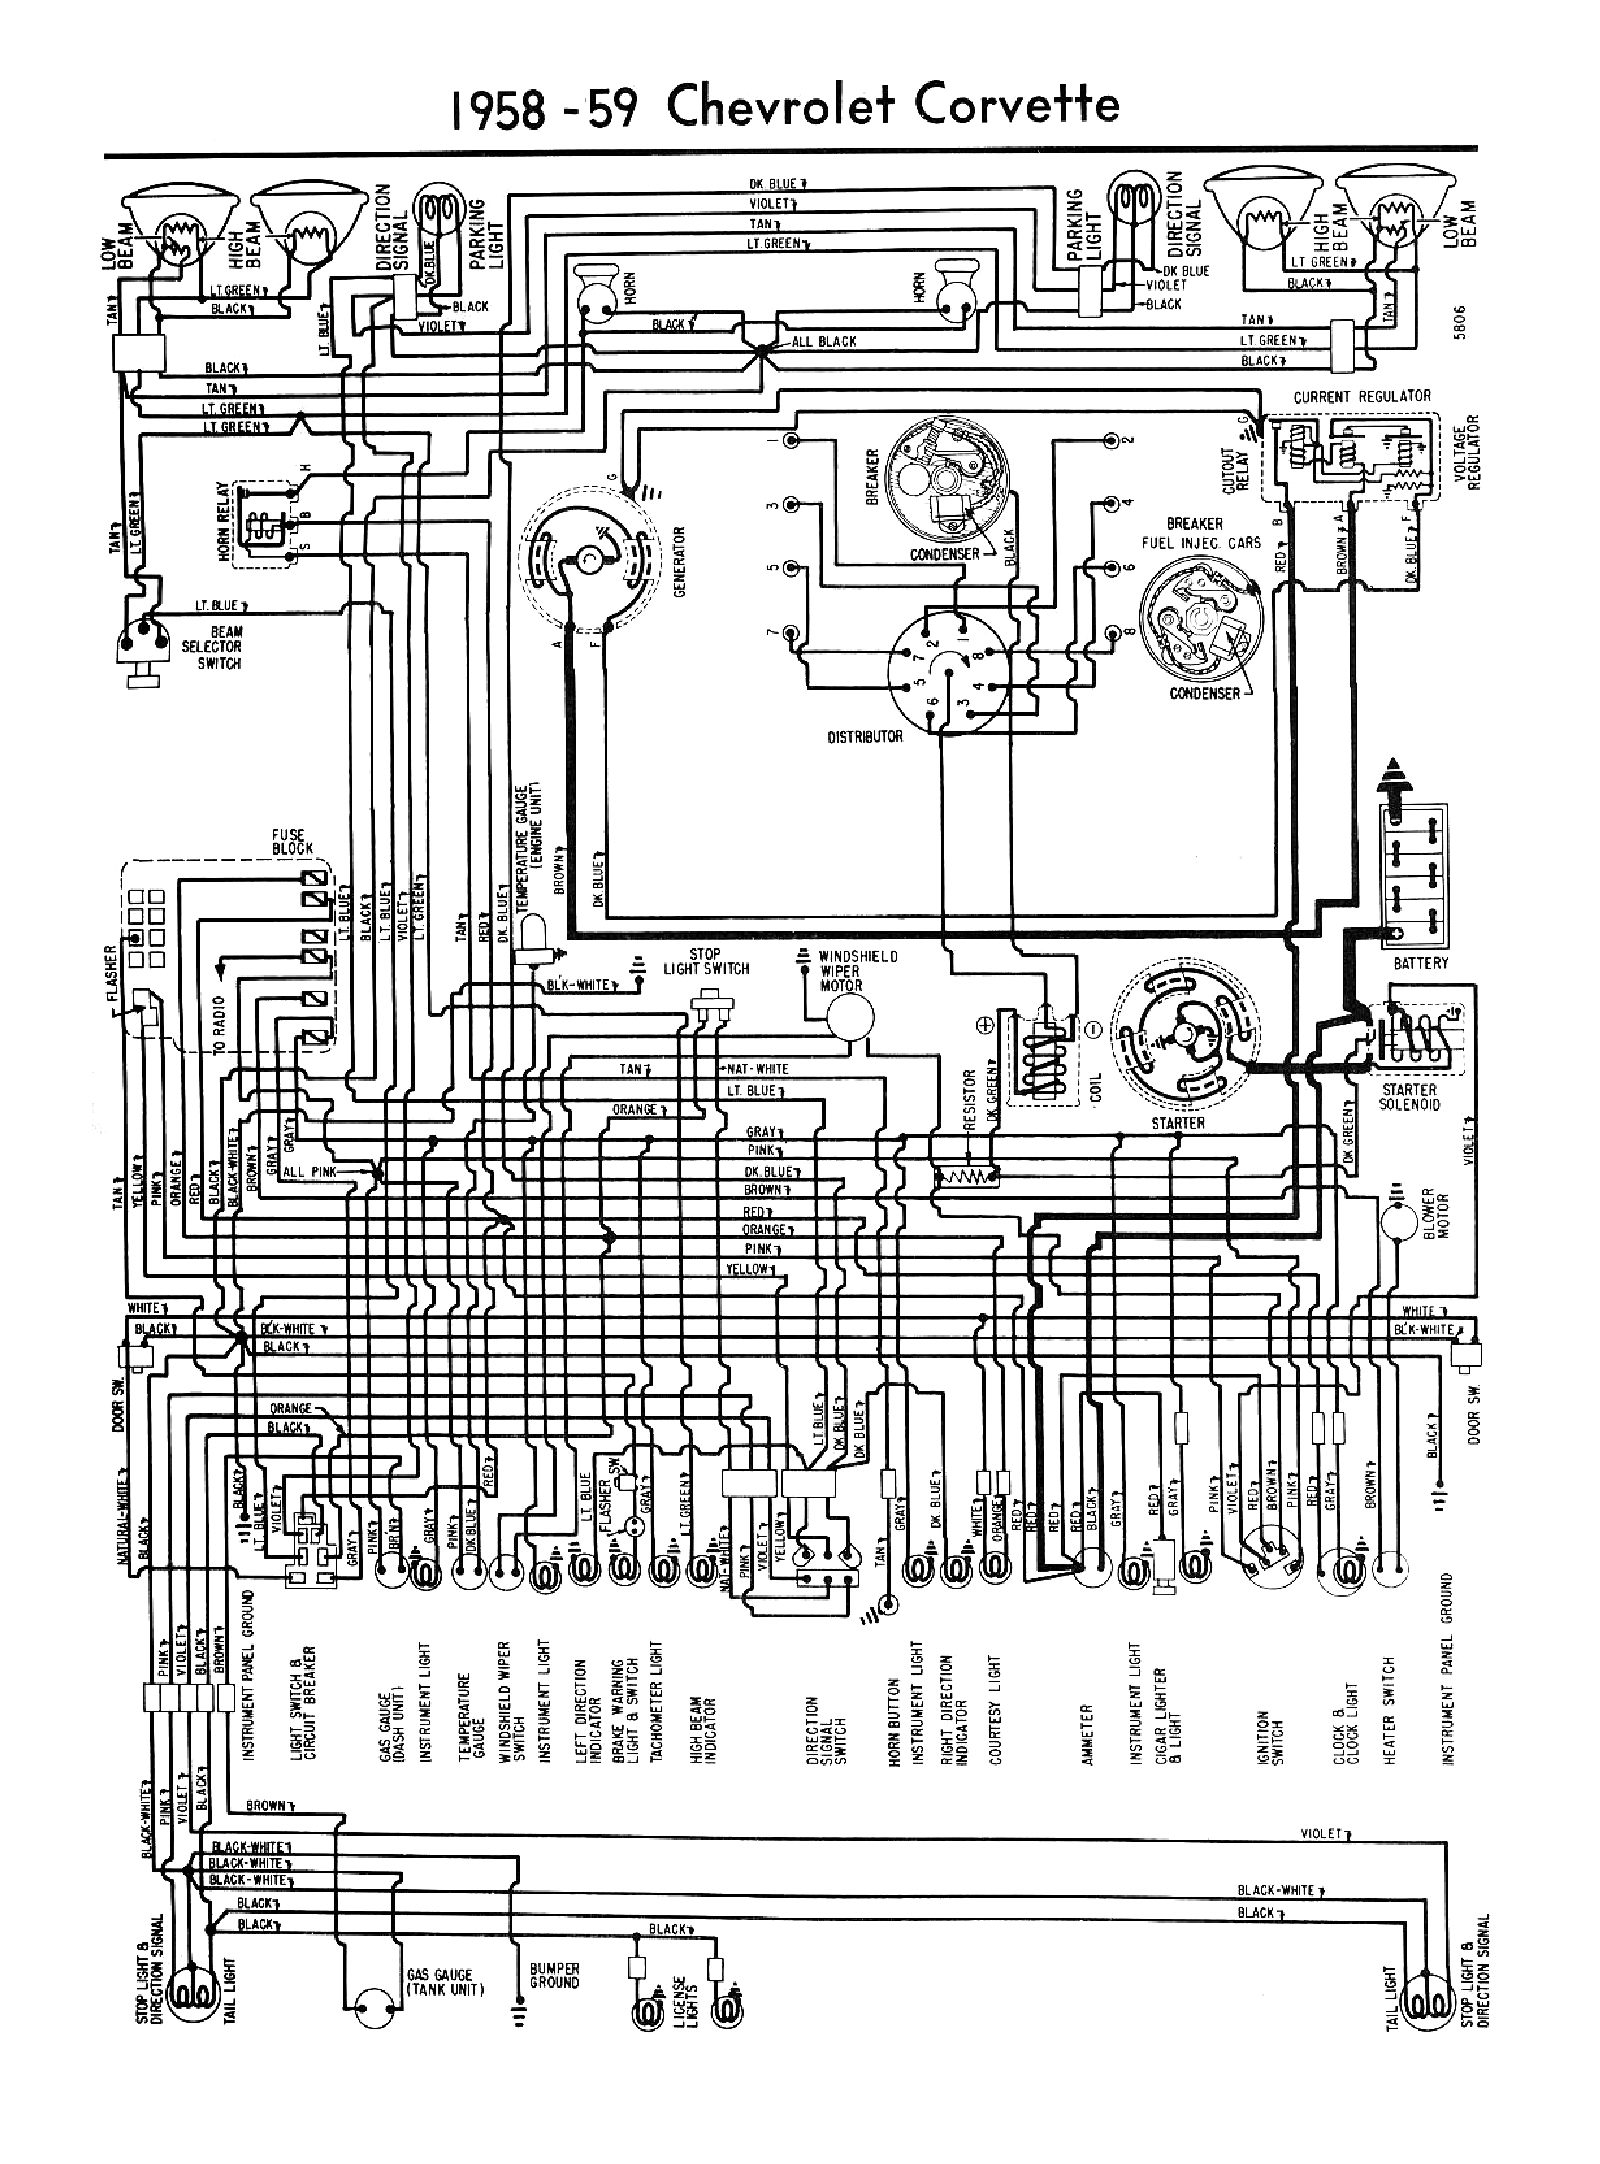 77 Corvette Wiring Diagram Free Download | Wiring Library29.contrixx-artikel.de